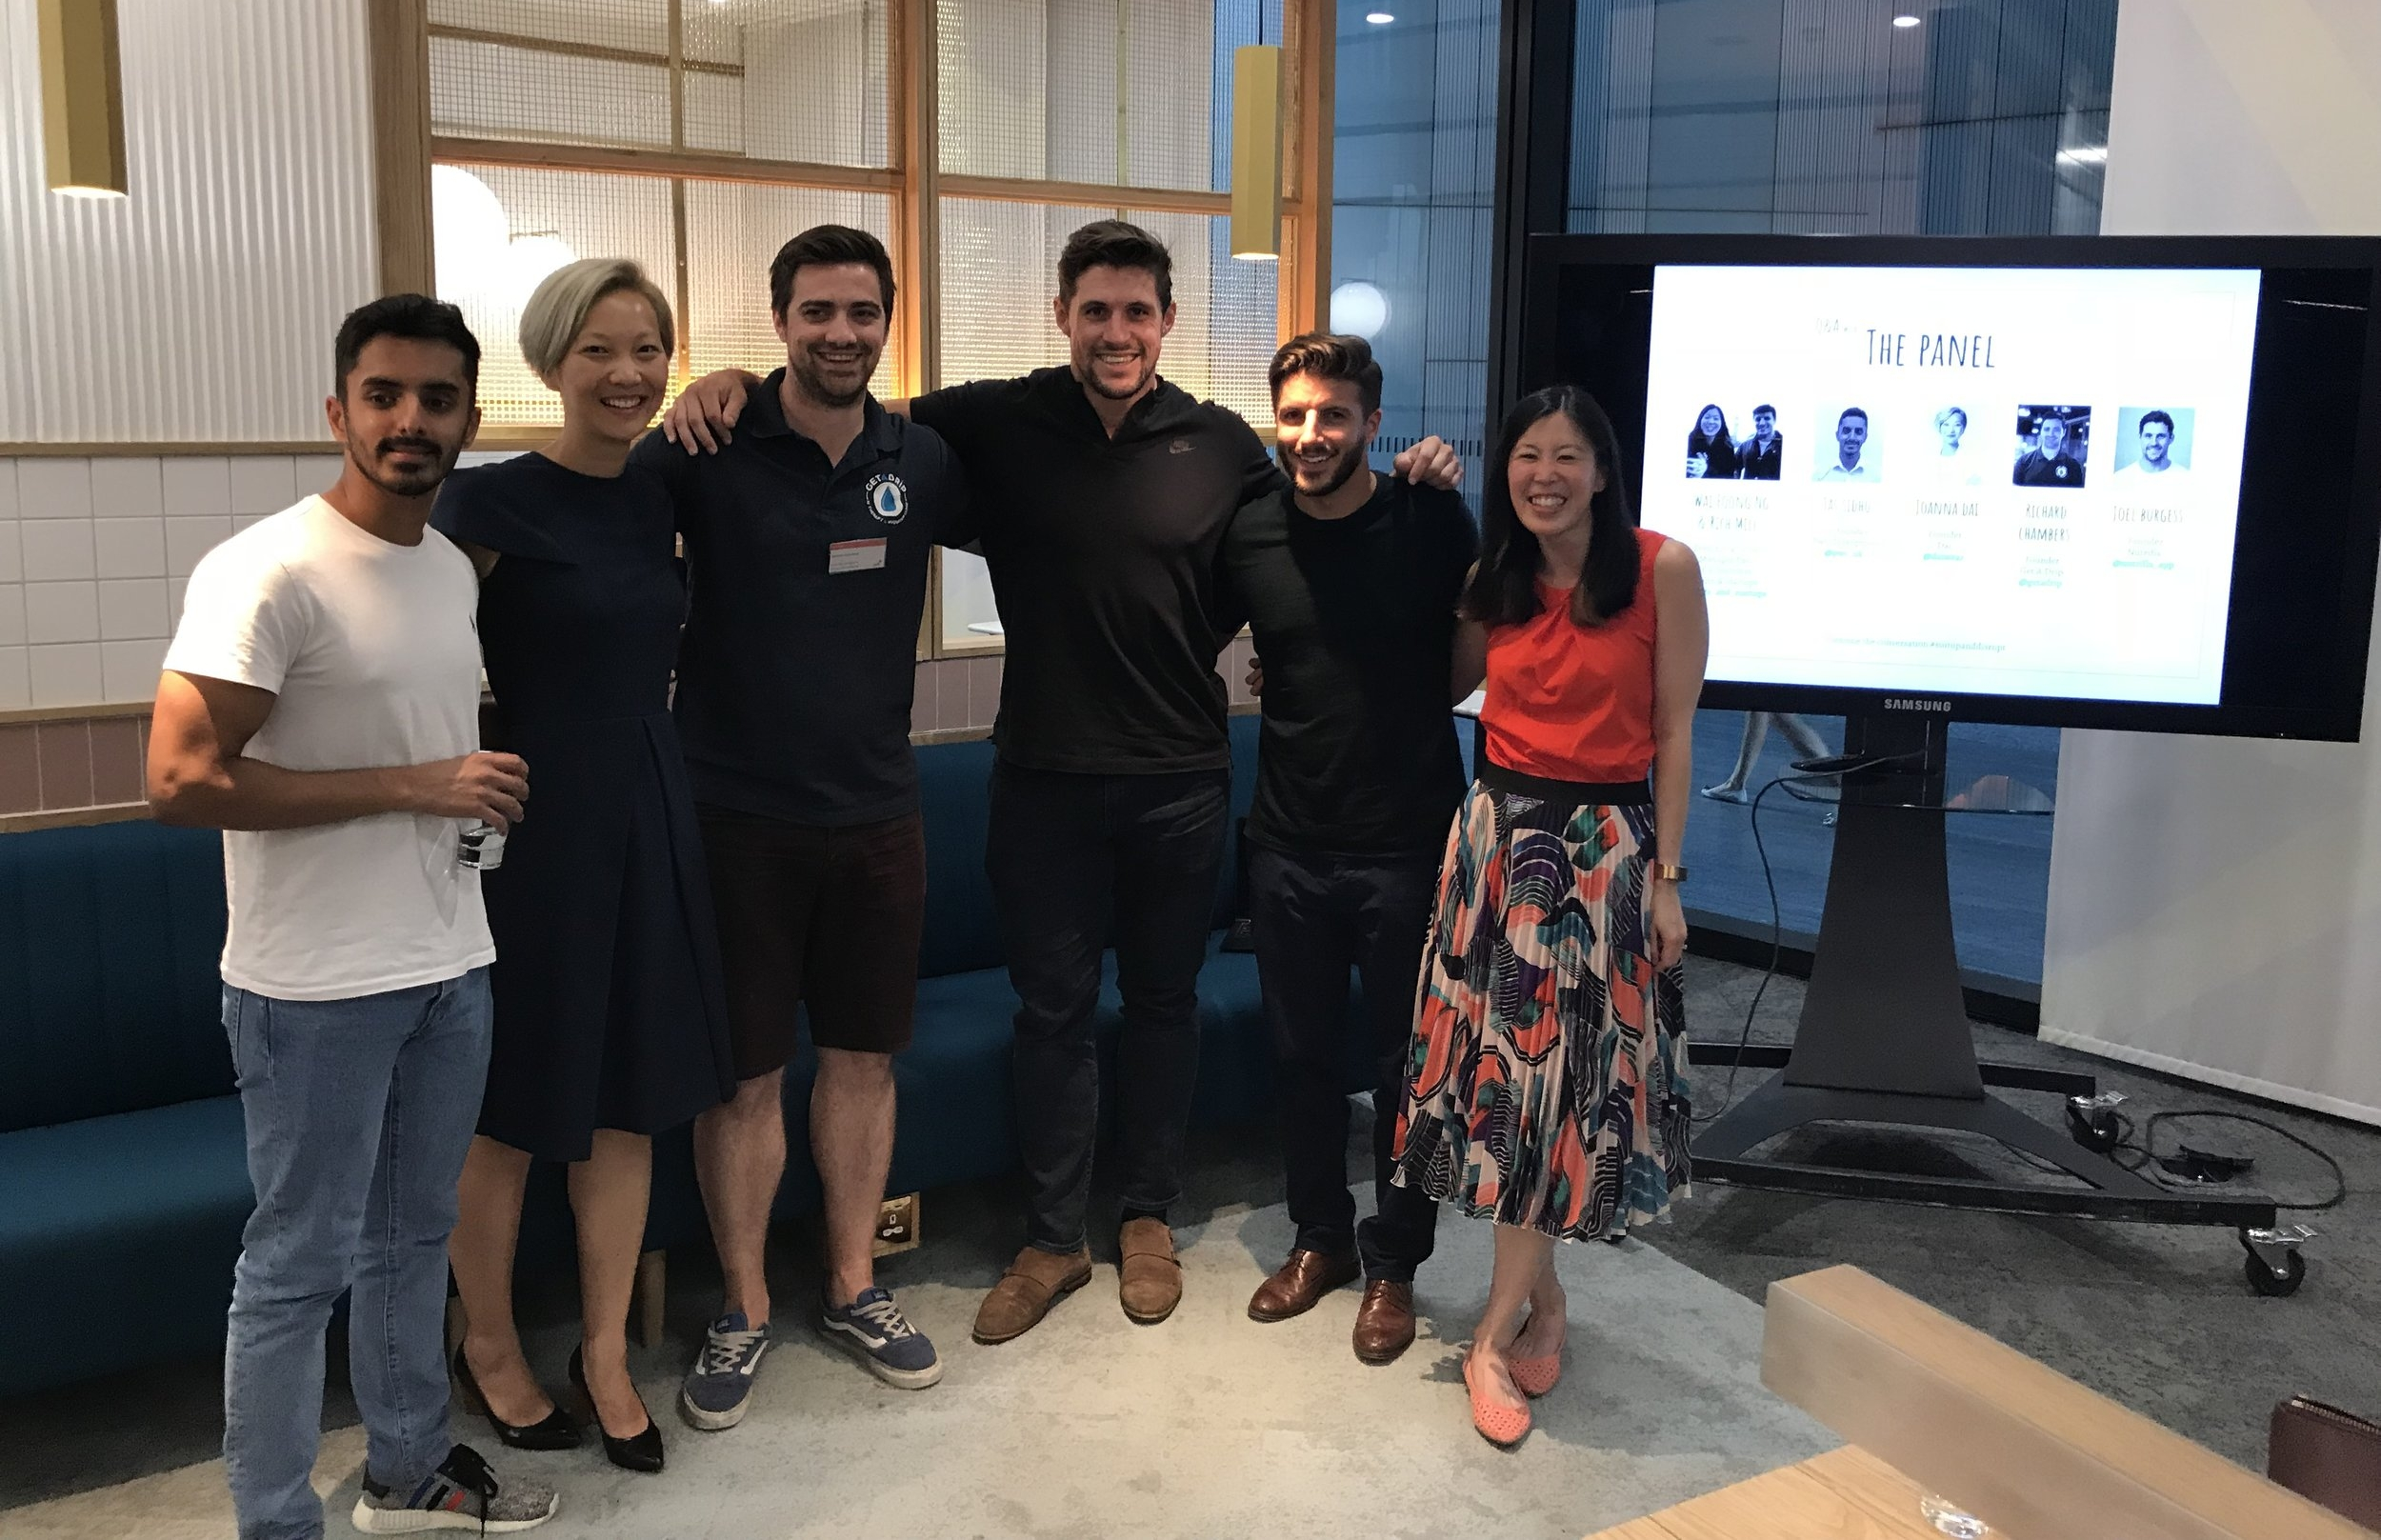 L to R: Jas Sidhu (PwC Disruption), Joanna Dai (Dai), Richard Chambers (Get A Drip), Joel Burgess (Nutrifix), Mills & Foong (PwC and Suits & Startups)